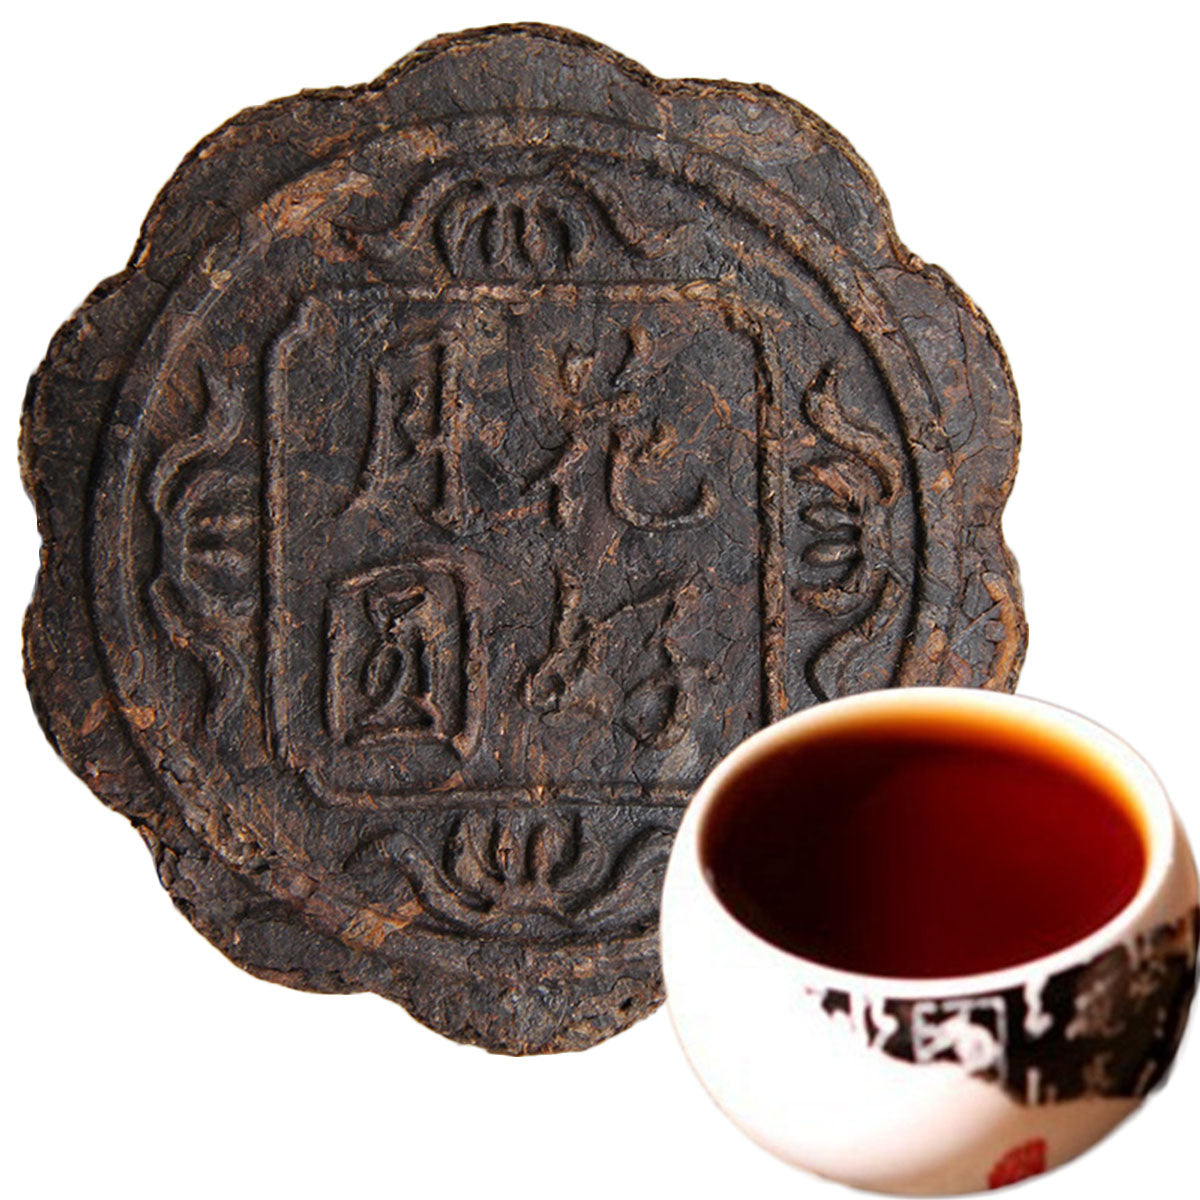 100g Yunnan Puerh Tea Moon Cake Flower Good Moon Round Pu Er Ripe Tea Green Food